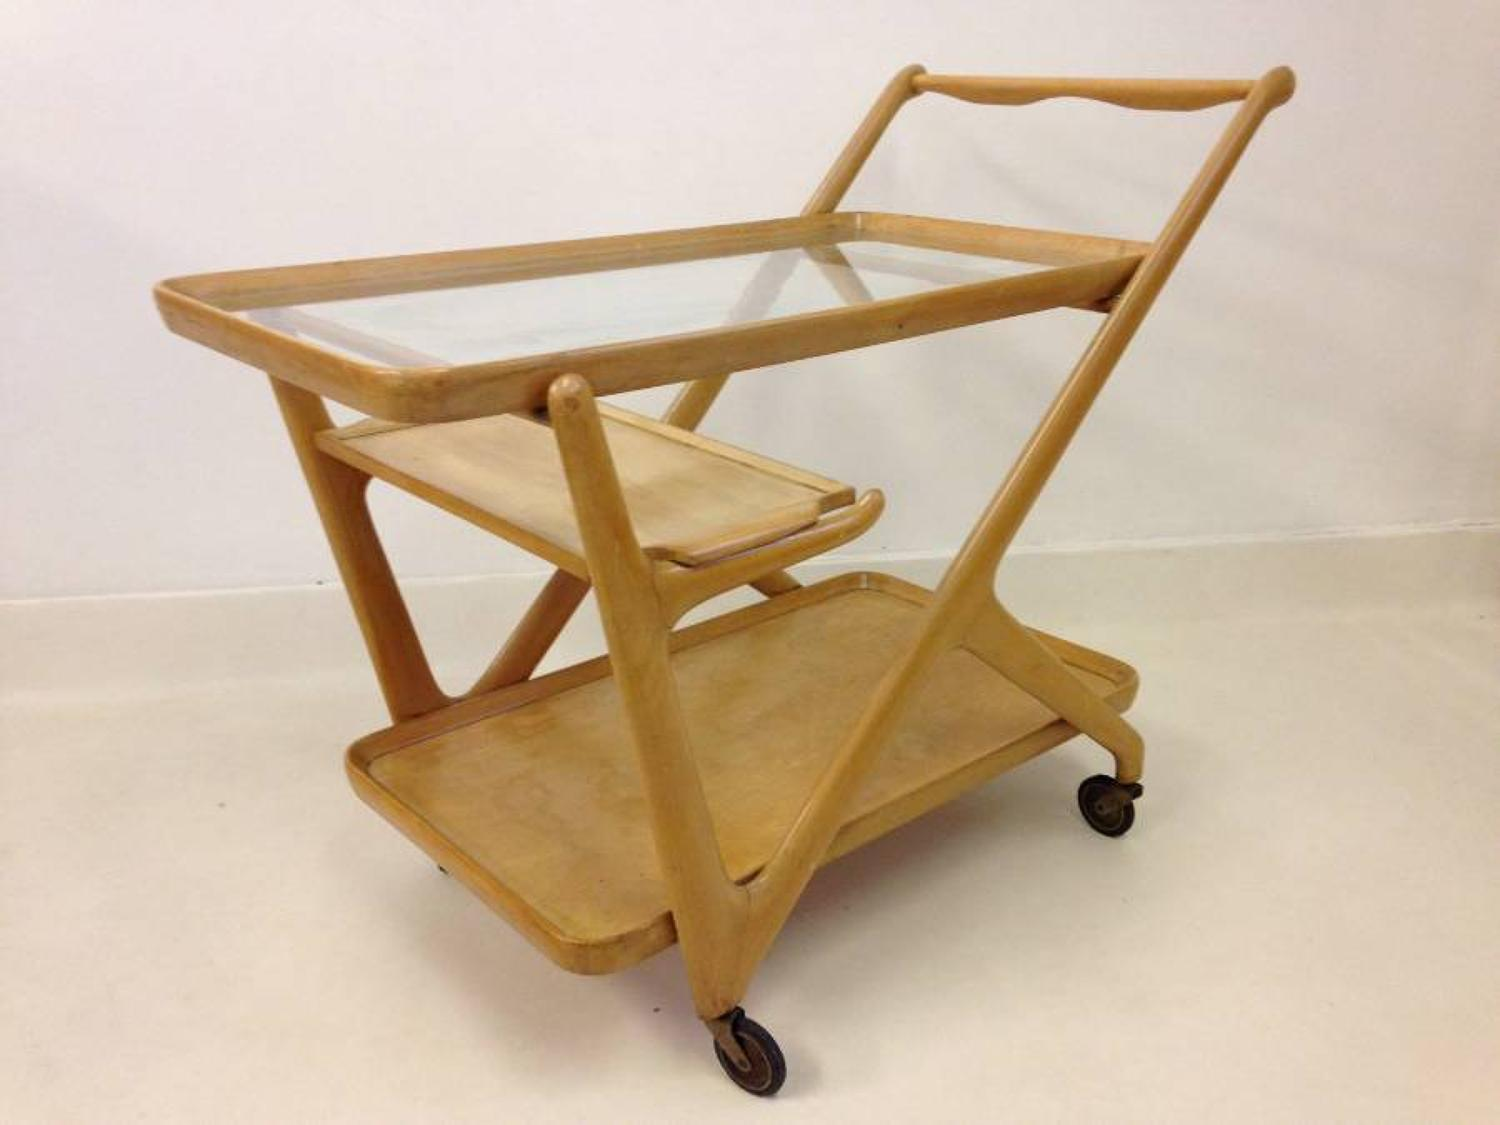 Italian trolley by Cesare Lacca